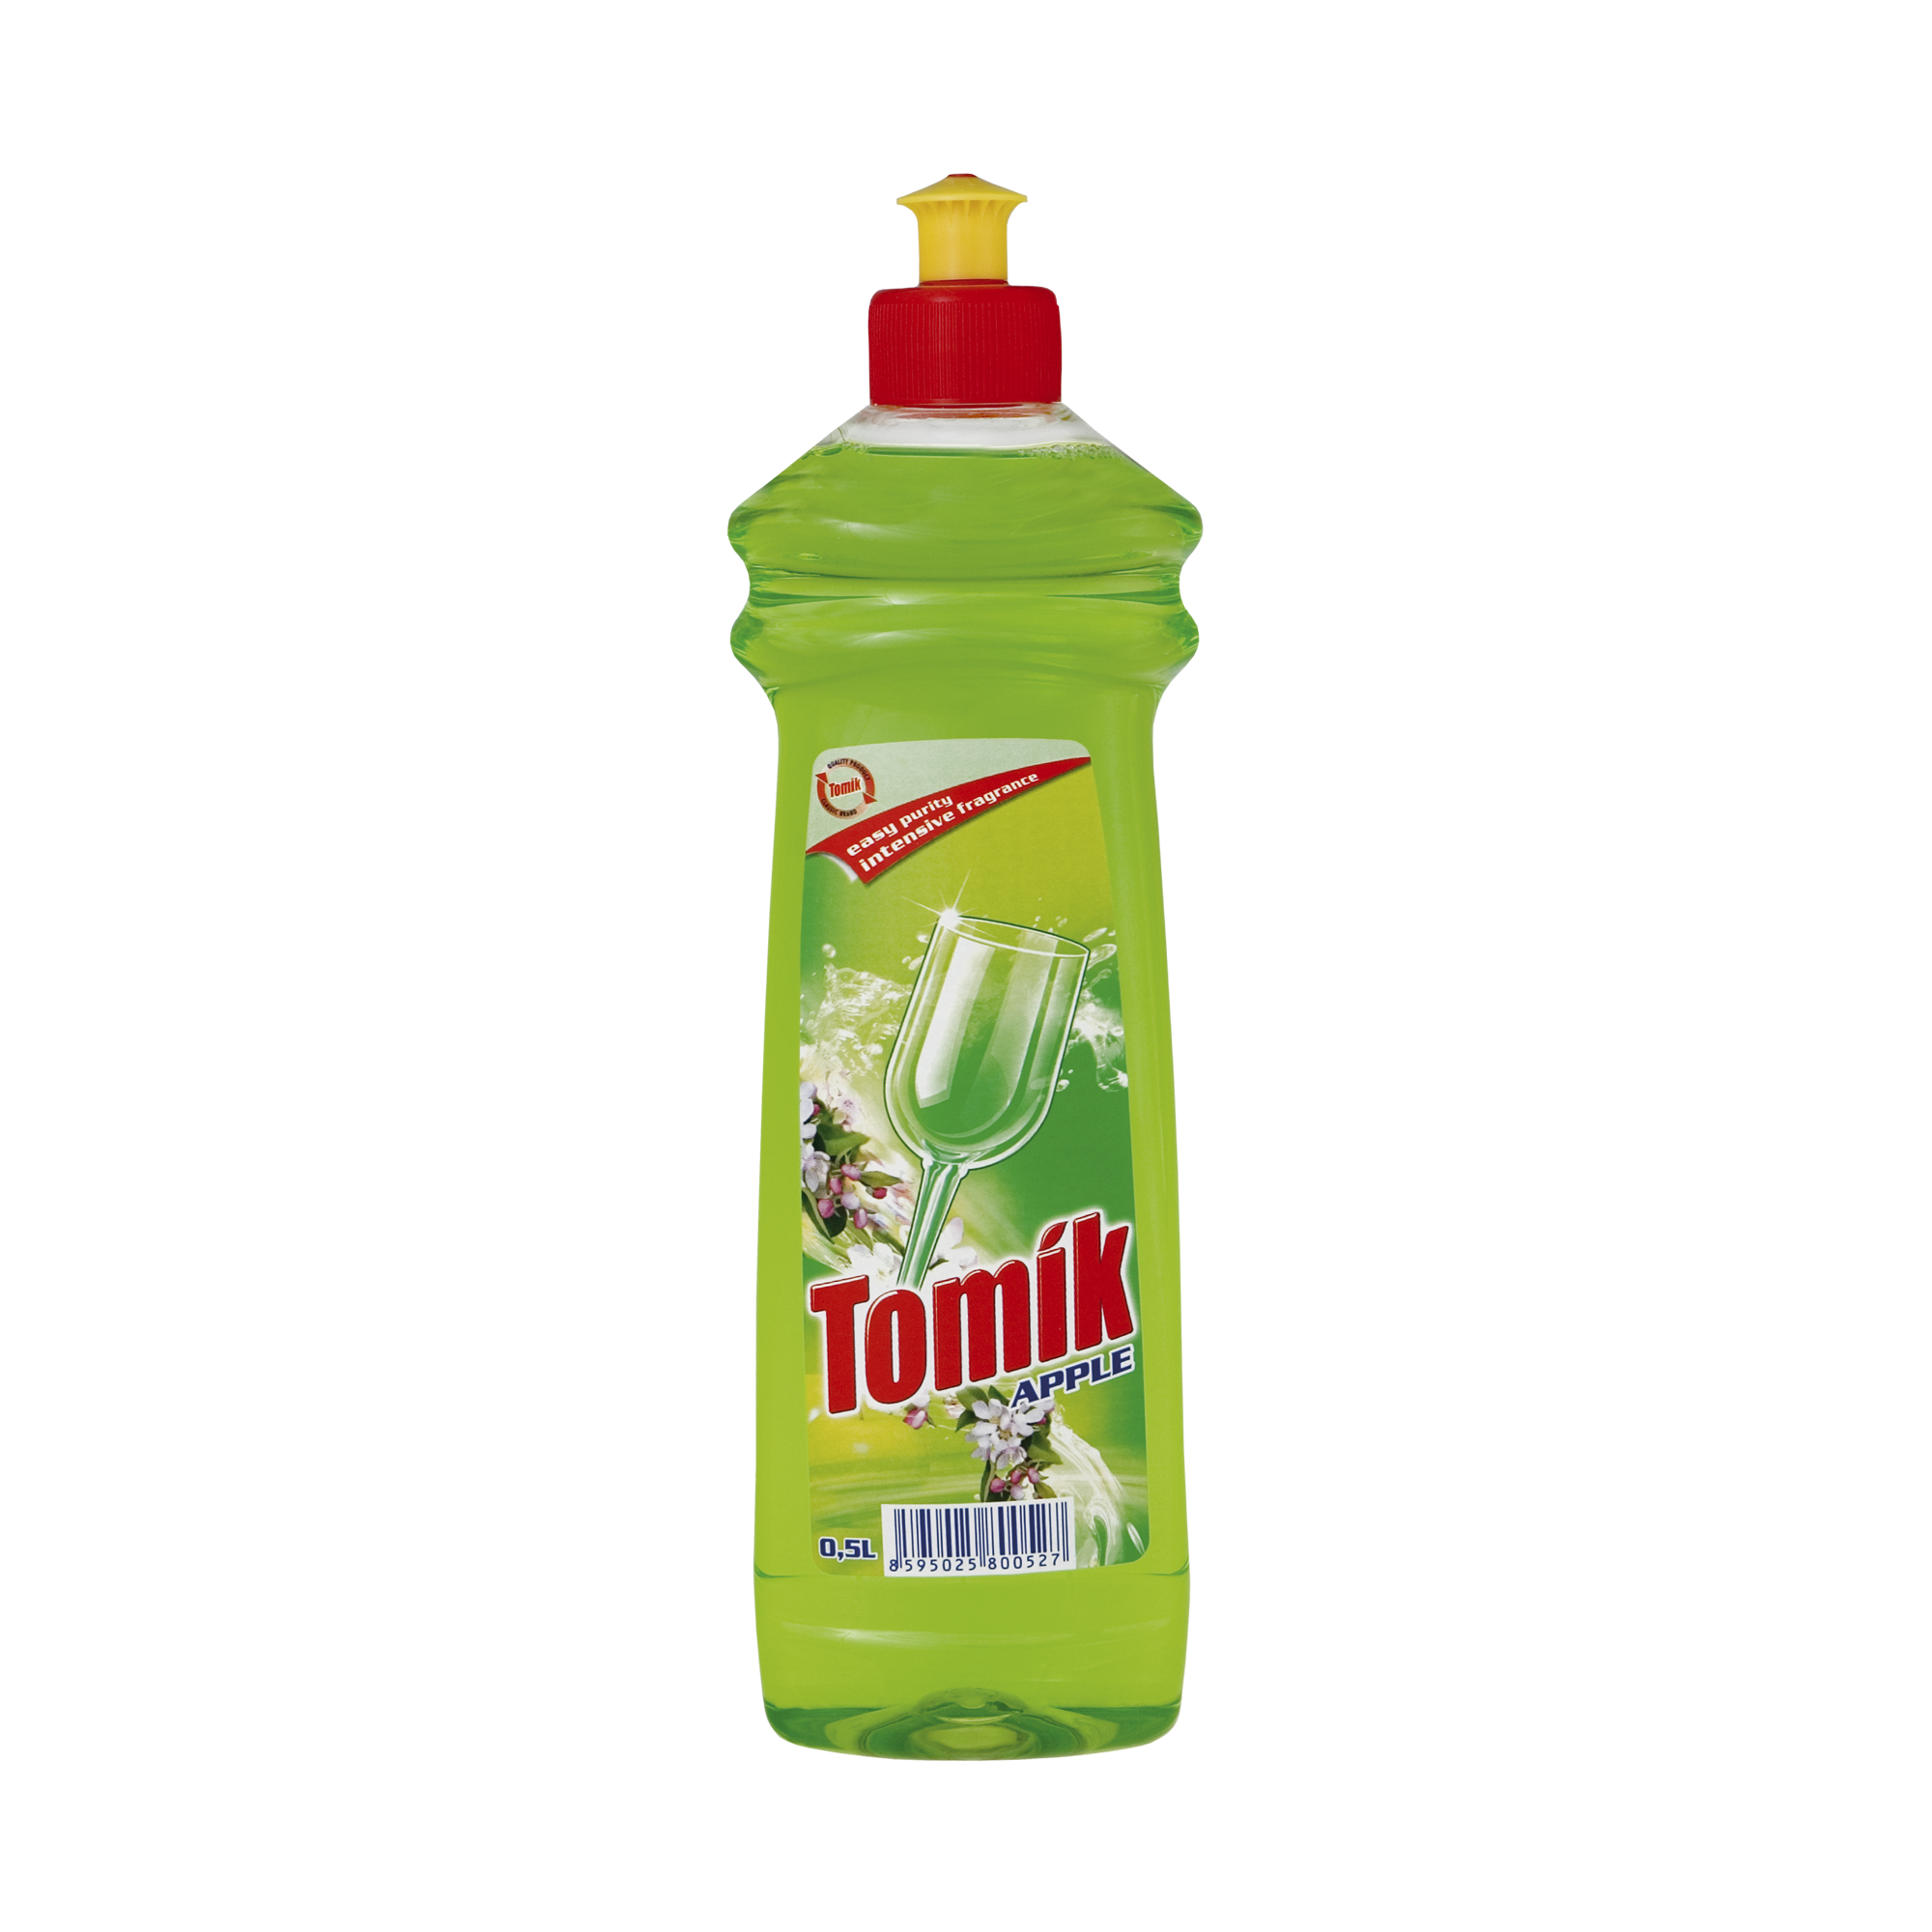 Tomík Apple washing up liquid